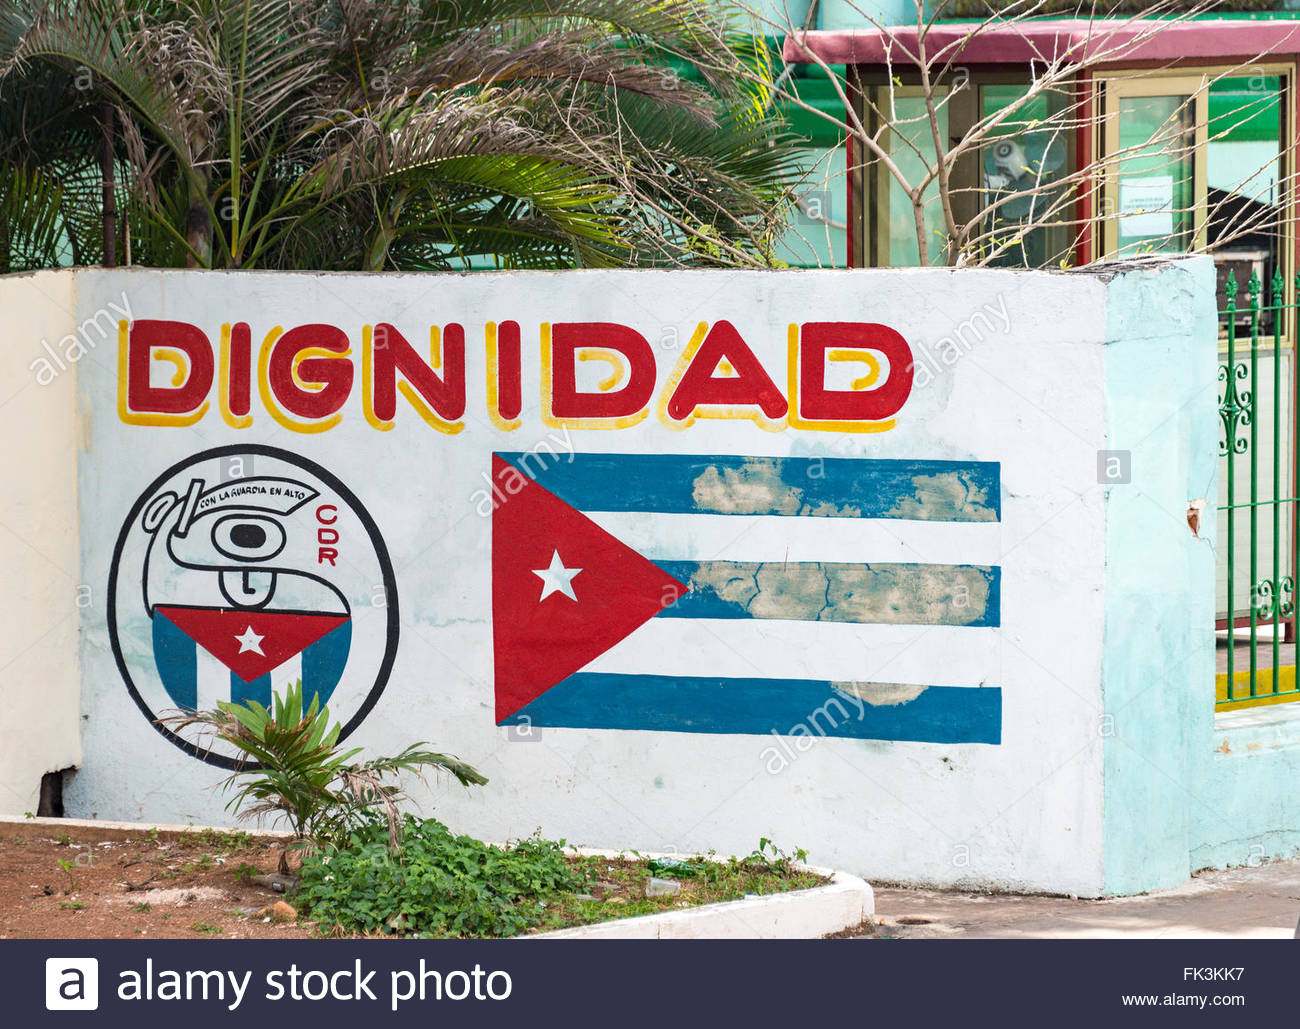 CDR or Revolution Defense Committee sign along a Cuban flag and the word Dignity, all painted in a wall - Stock Image